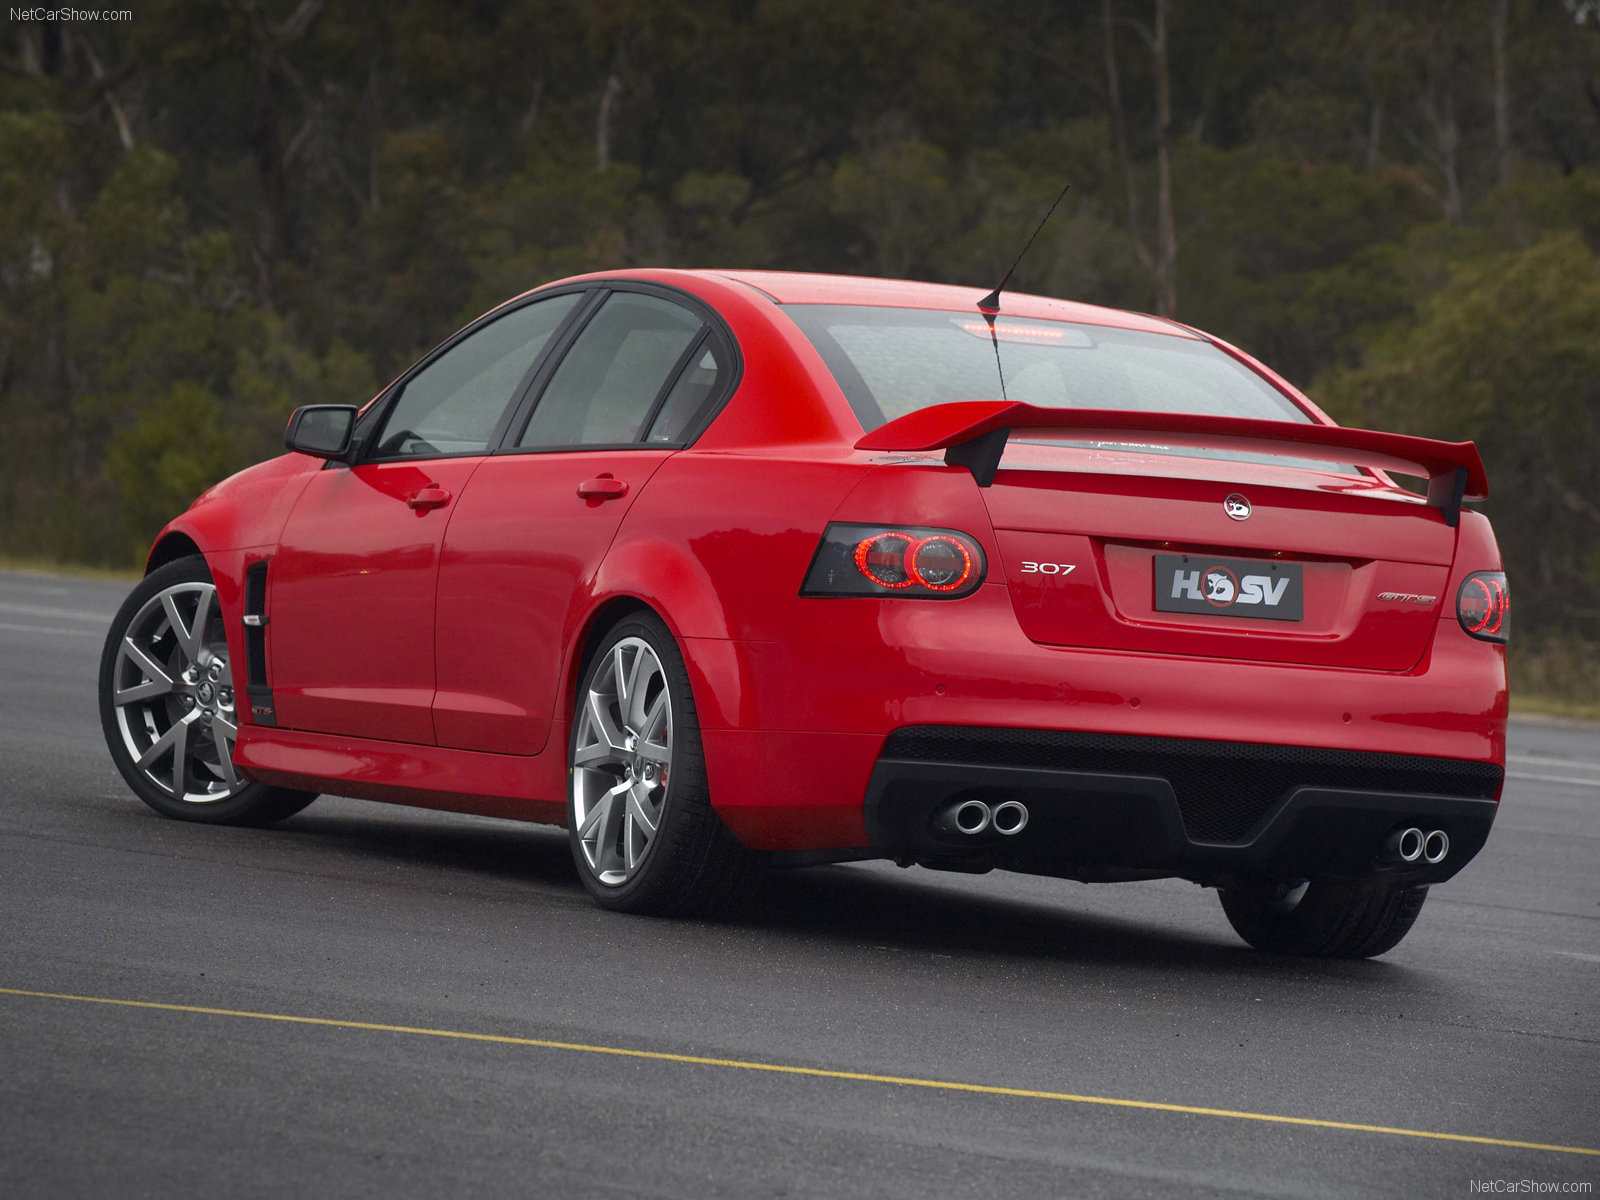 Holden hsv photo - 3